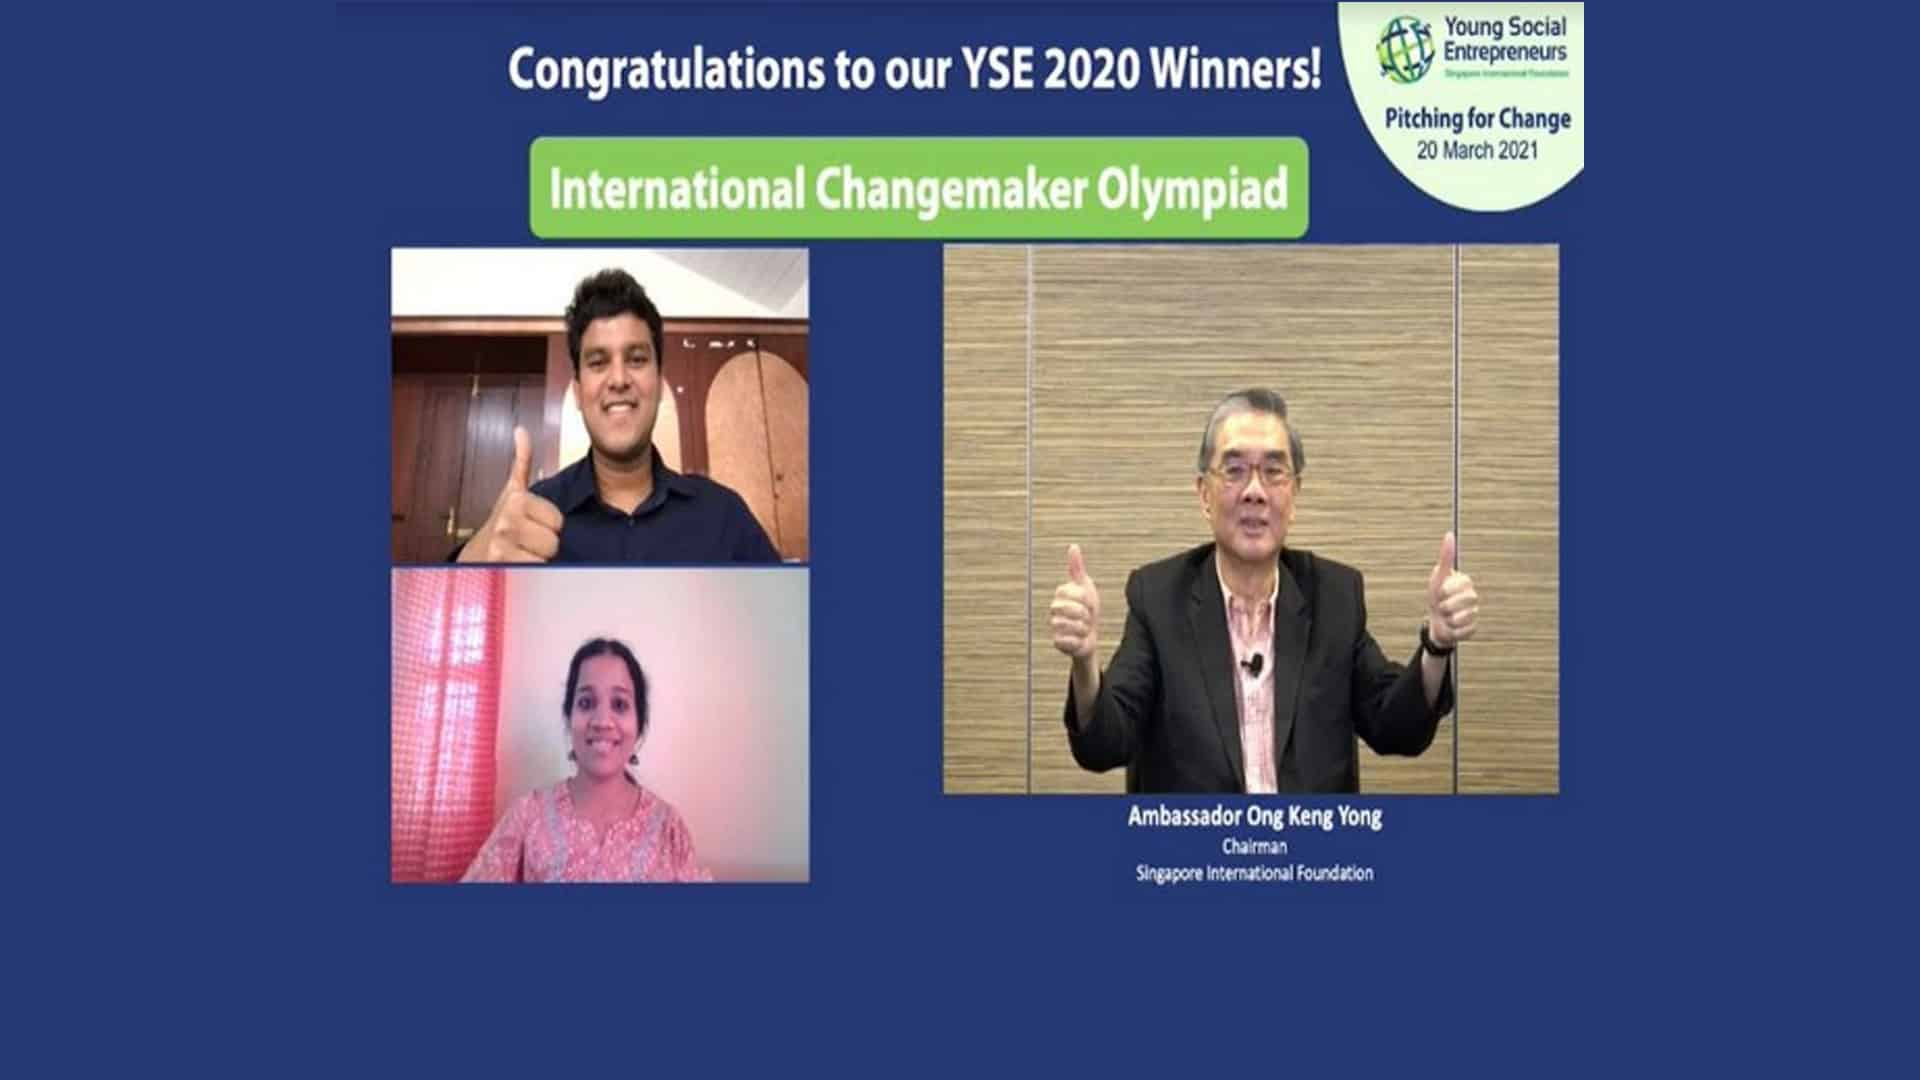 IIT Gold-Medalist's Ed-Tech Organization Wins the Young Social Entrepreneurs Global Award in Singapore